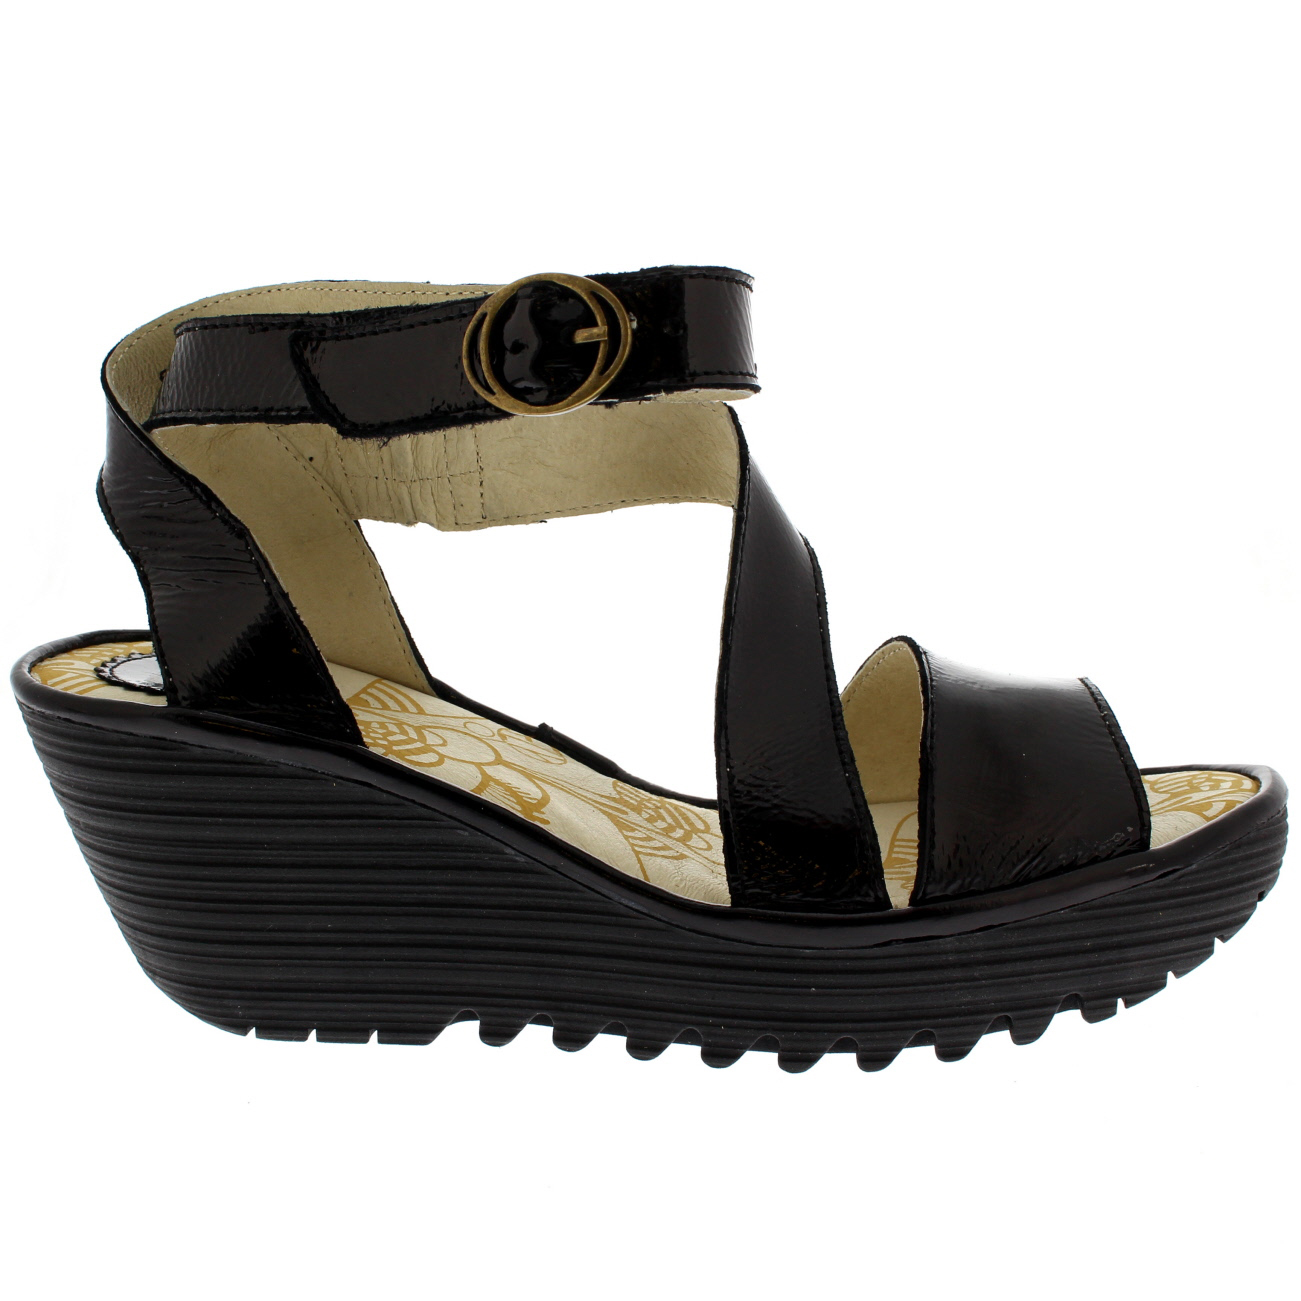 0dbfd717 Details about Ladies Fly London Yesk Luxor Holiday Summer Peep Toe Wedge  Sandals All Sizes